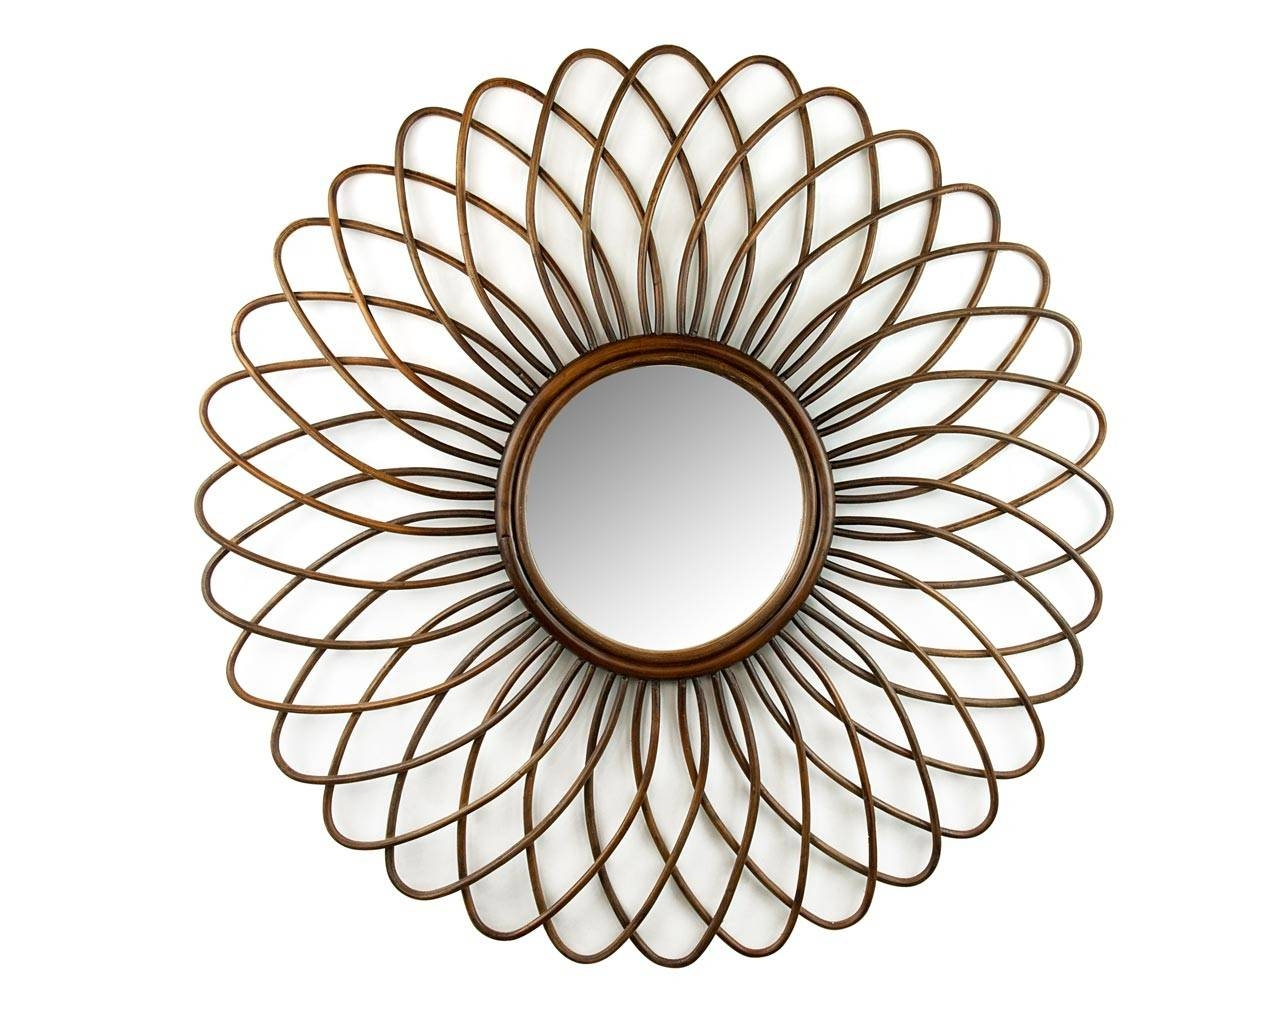 Rattan Ornate Round Mirror - Handcrafted Feature Mirrors with regard to Ornate Round Mirrors (Image 24 of 25)